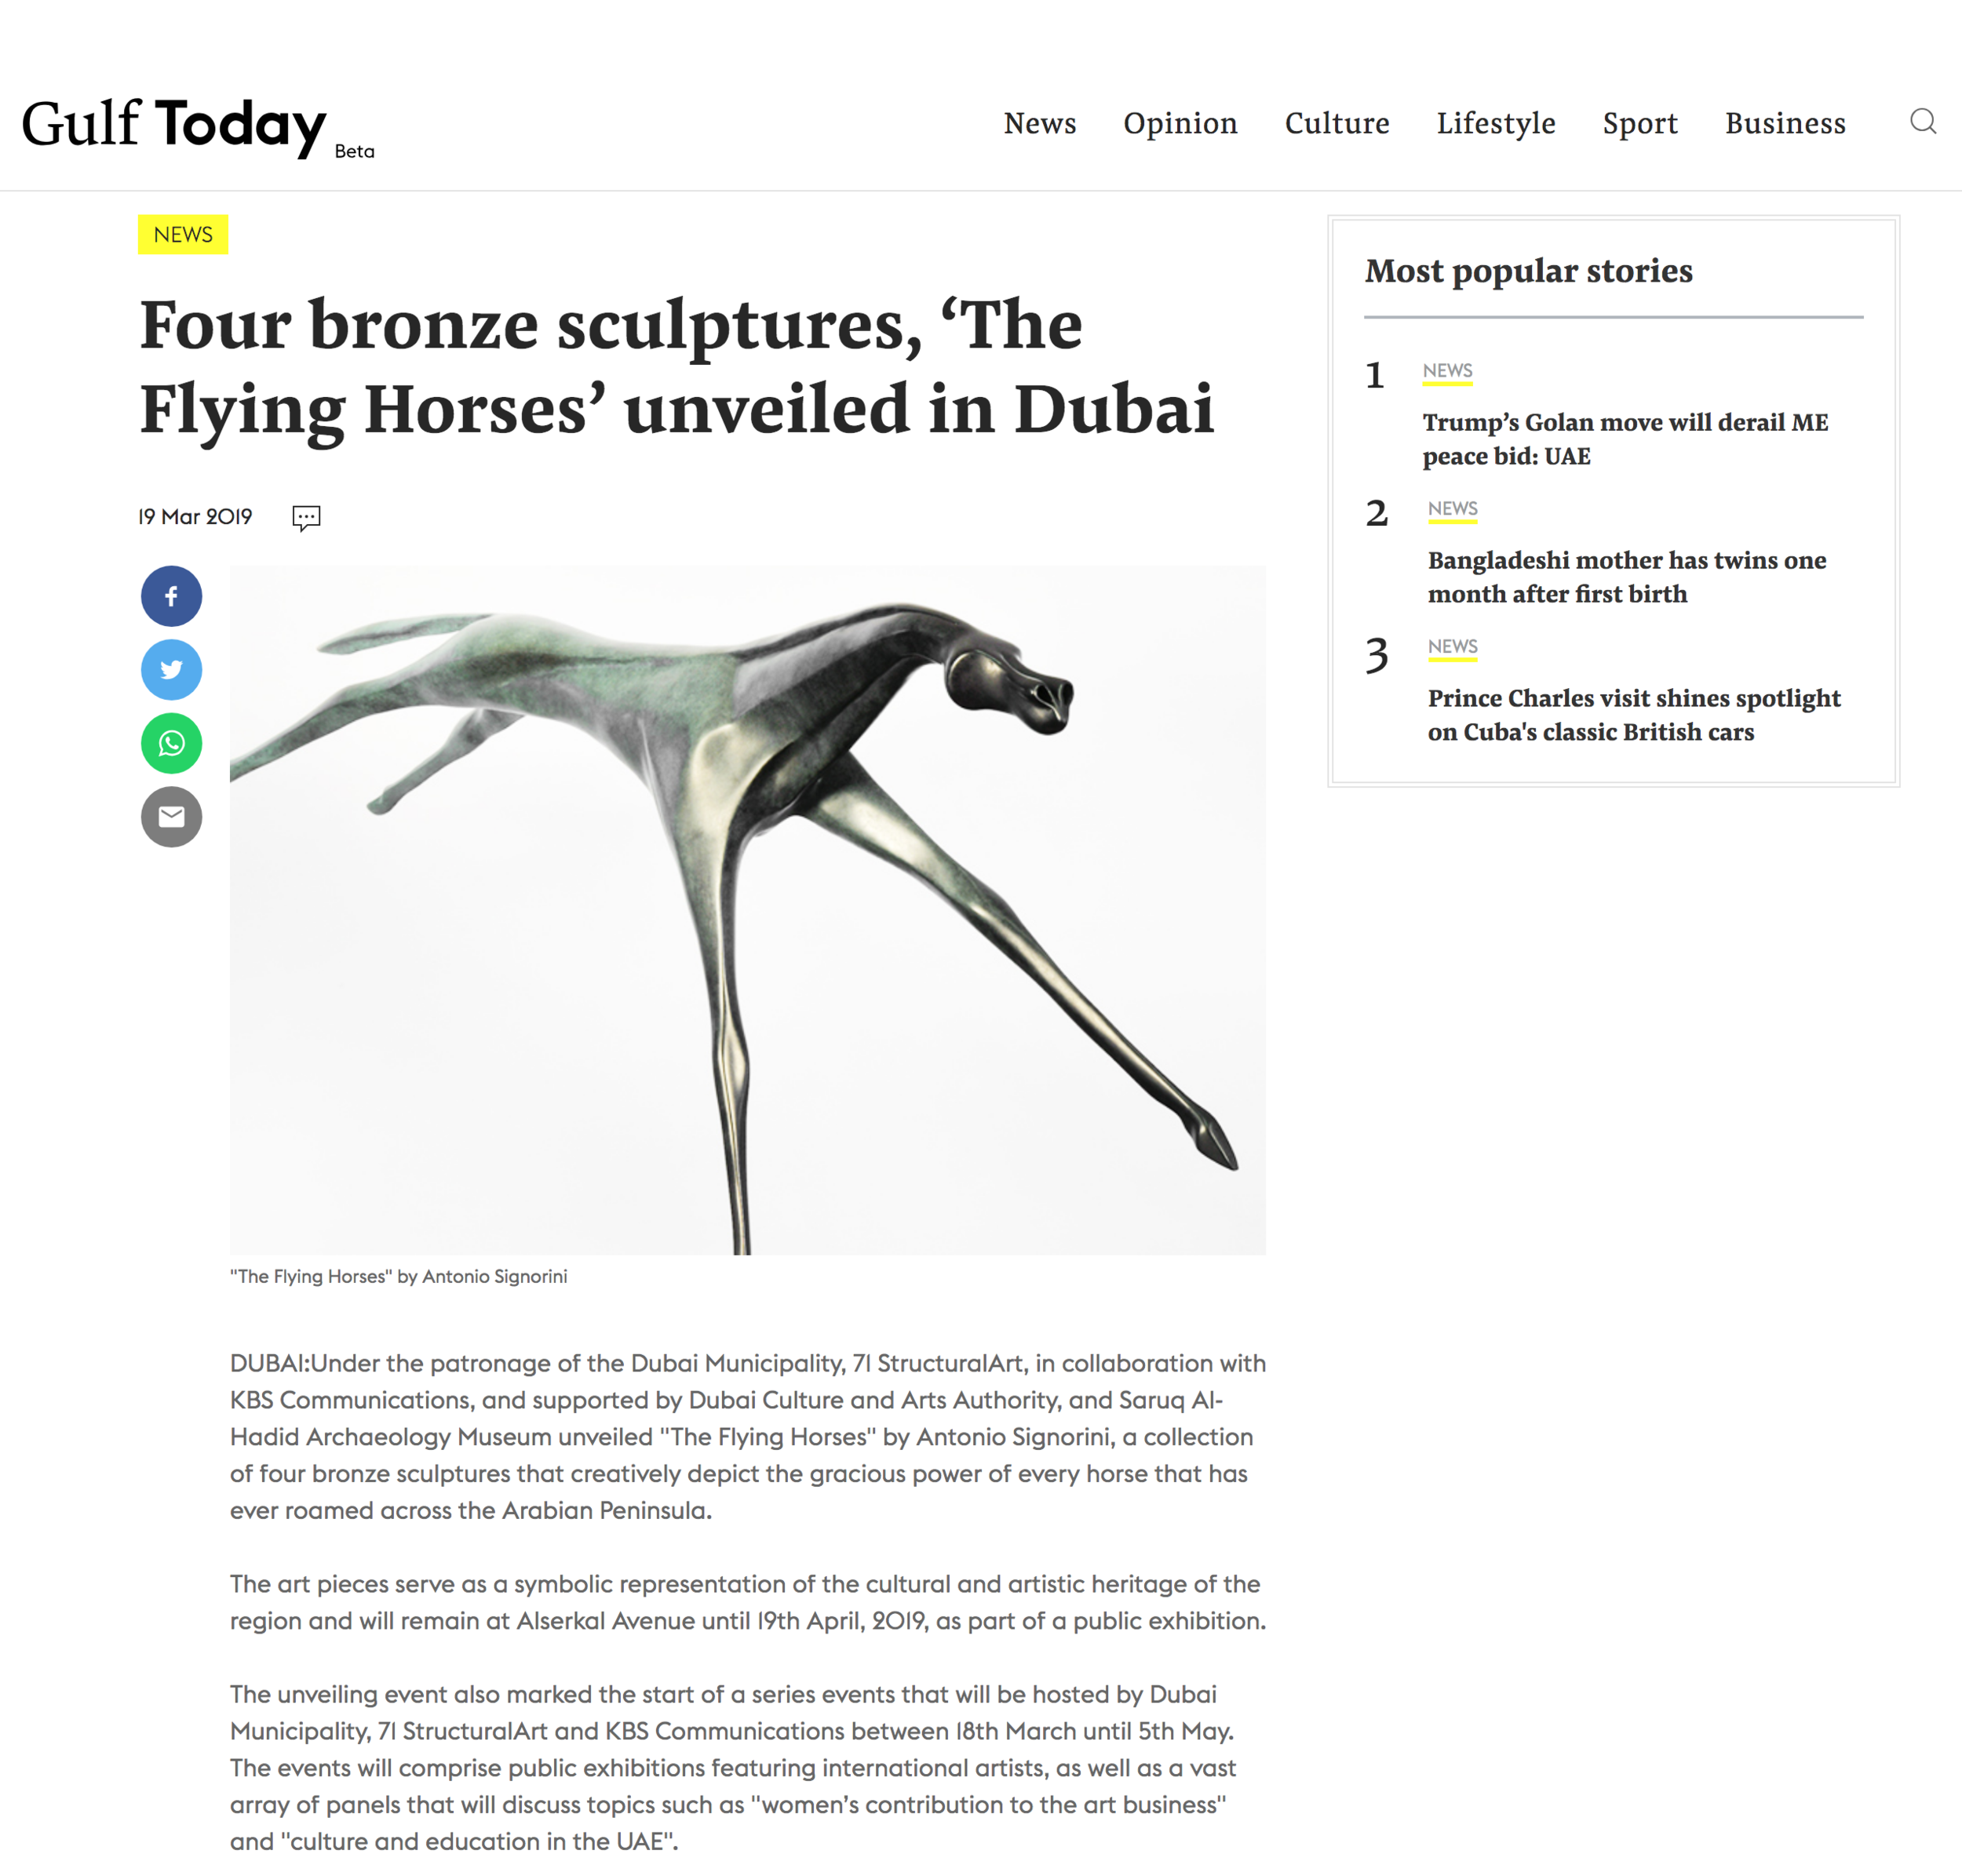 FireShot Capture 004 - _The Flying Horses_ by Antonio Signorini - GulfToday - gulftoday.ae.png